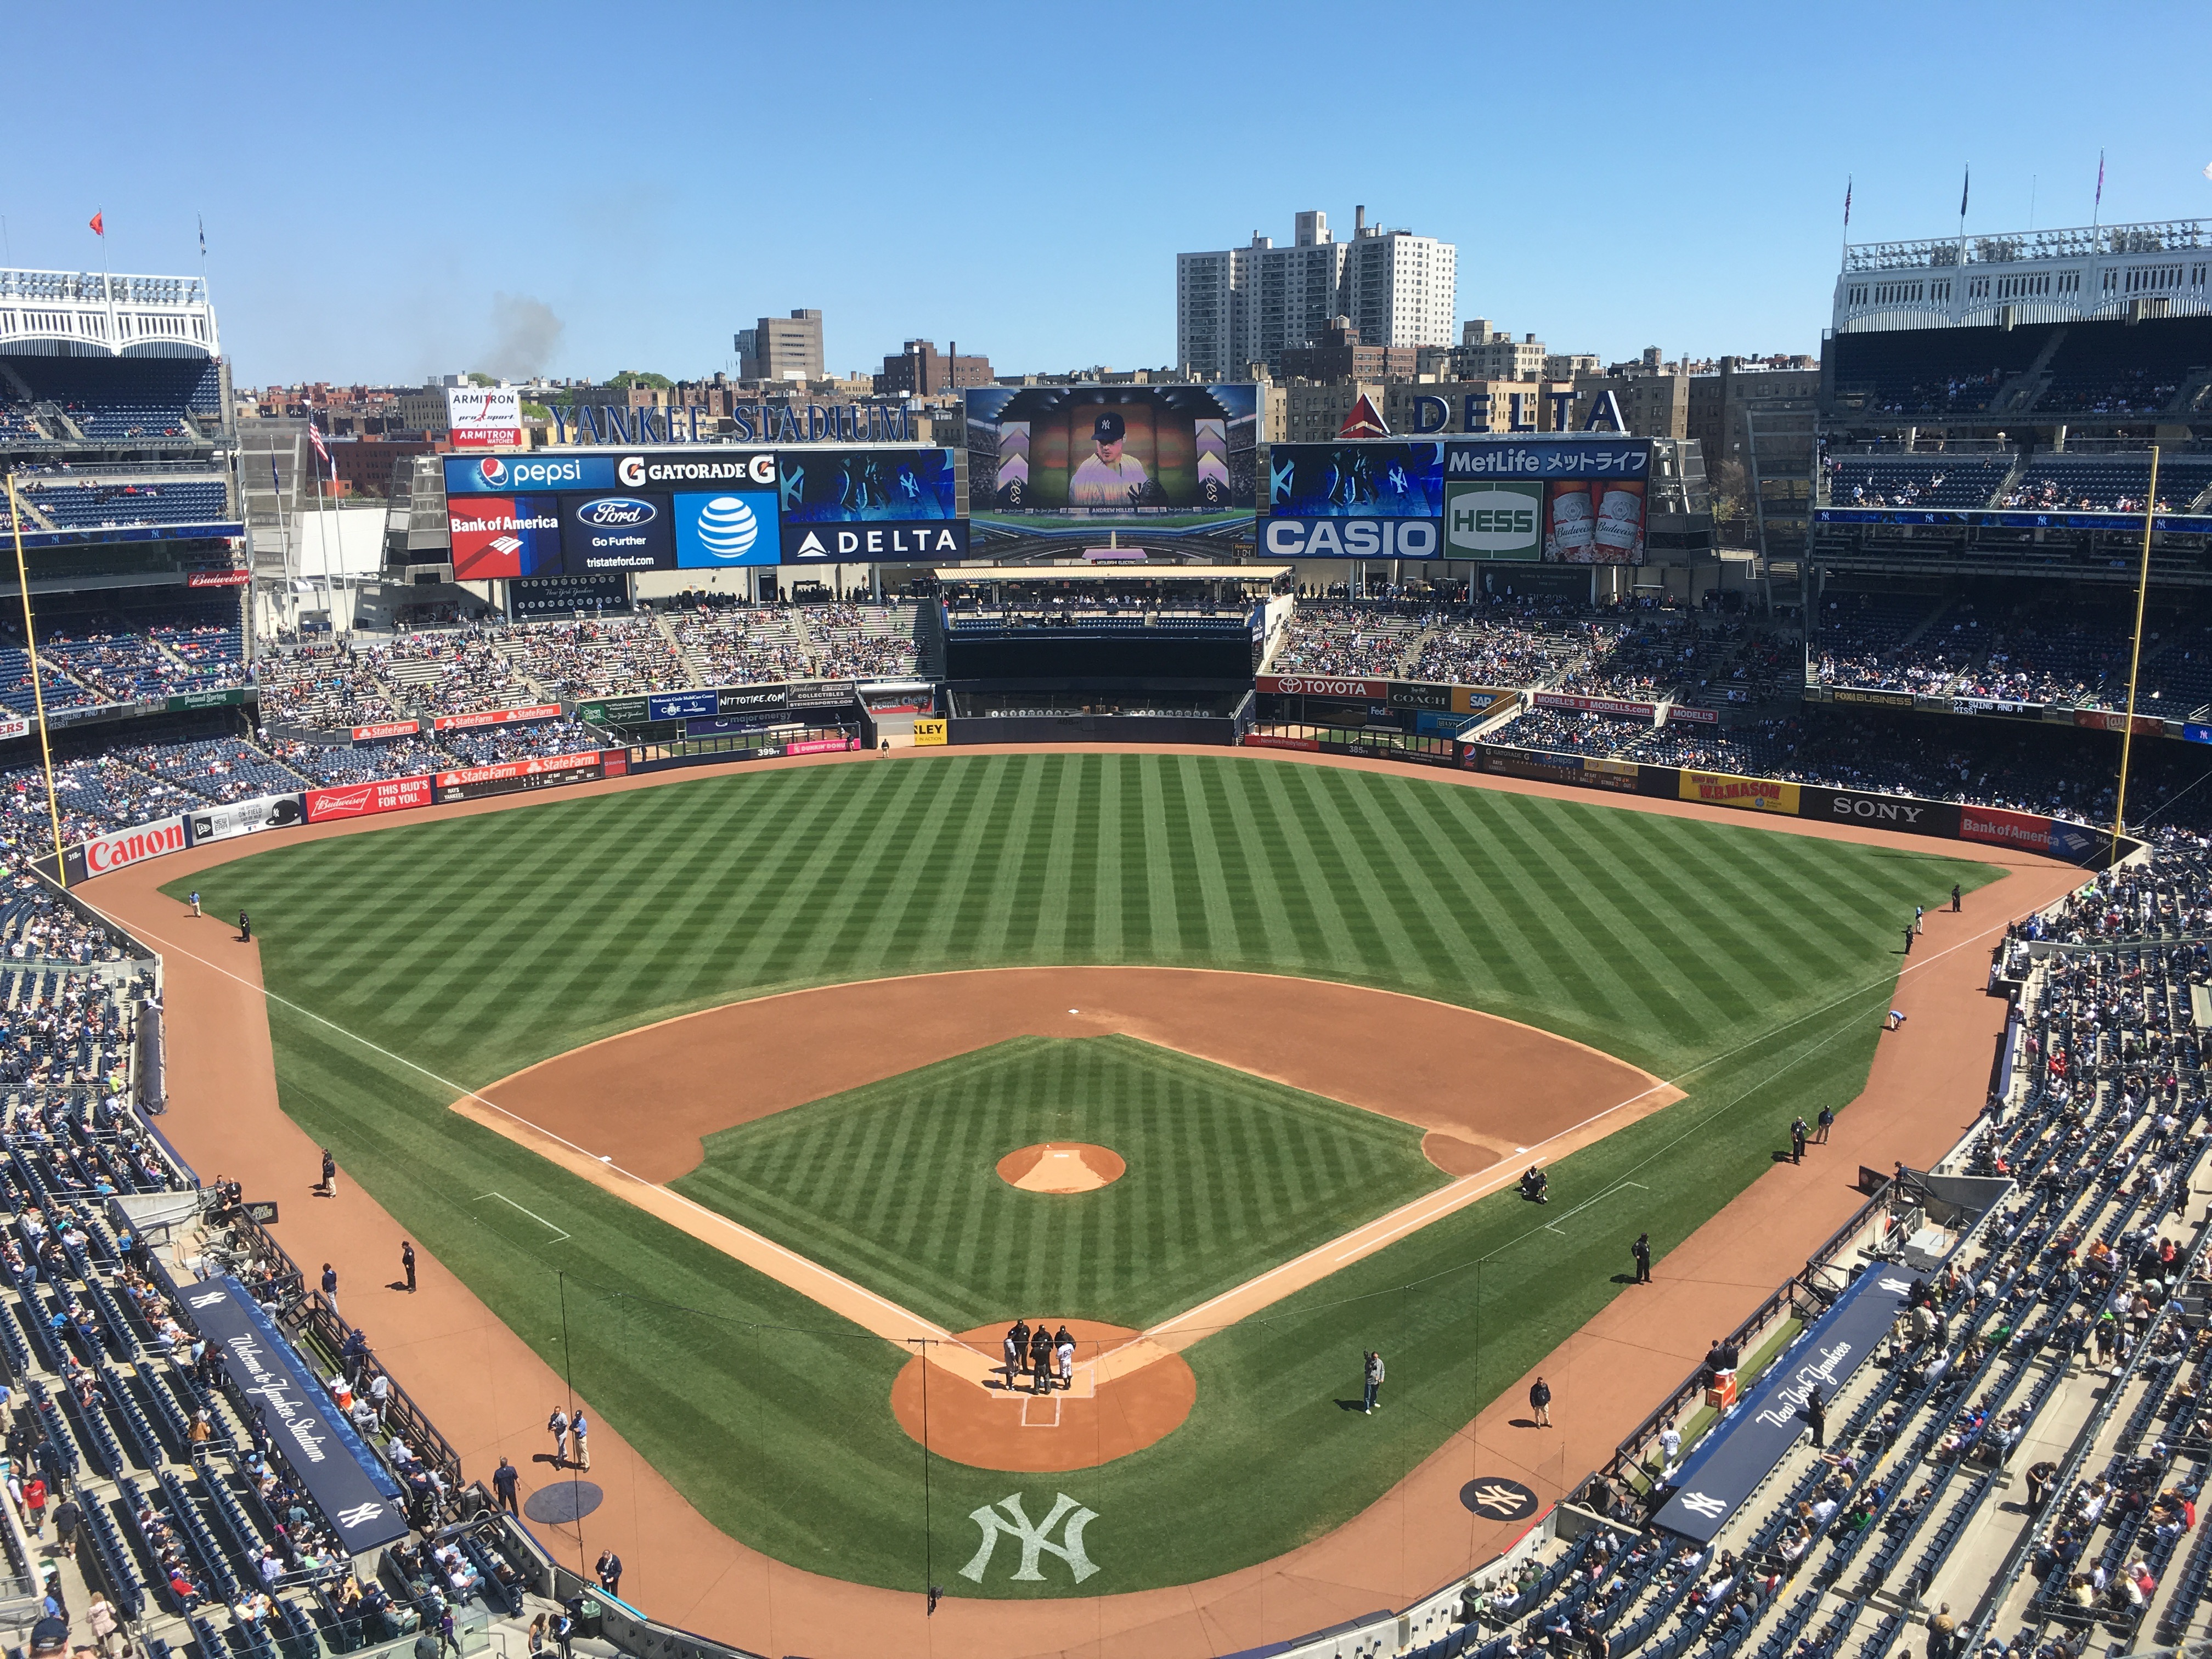 new york yankees View the latest new york yankees news, scores, schedule, stats, roster, standings, players, fantasy leaders, rumors, videos, photos, injuries, transactions and more .